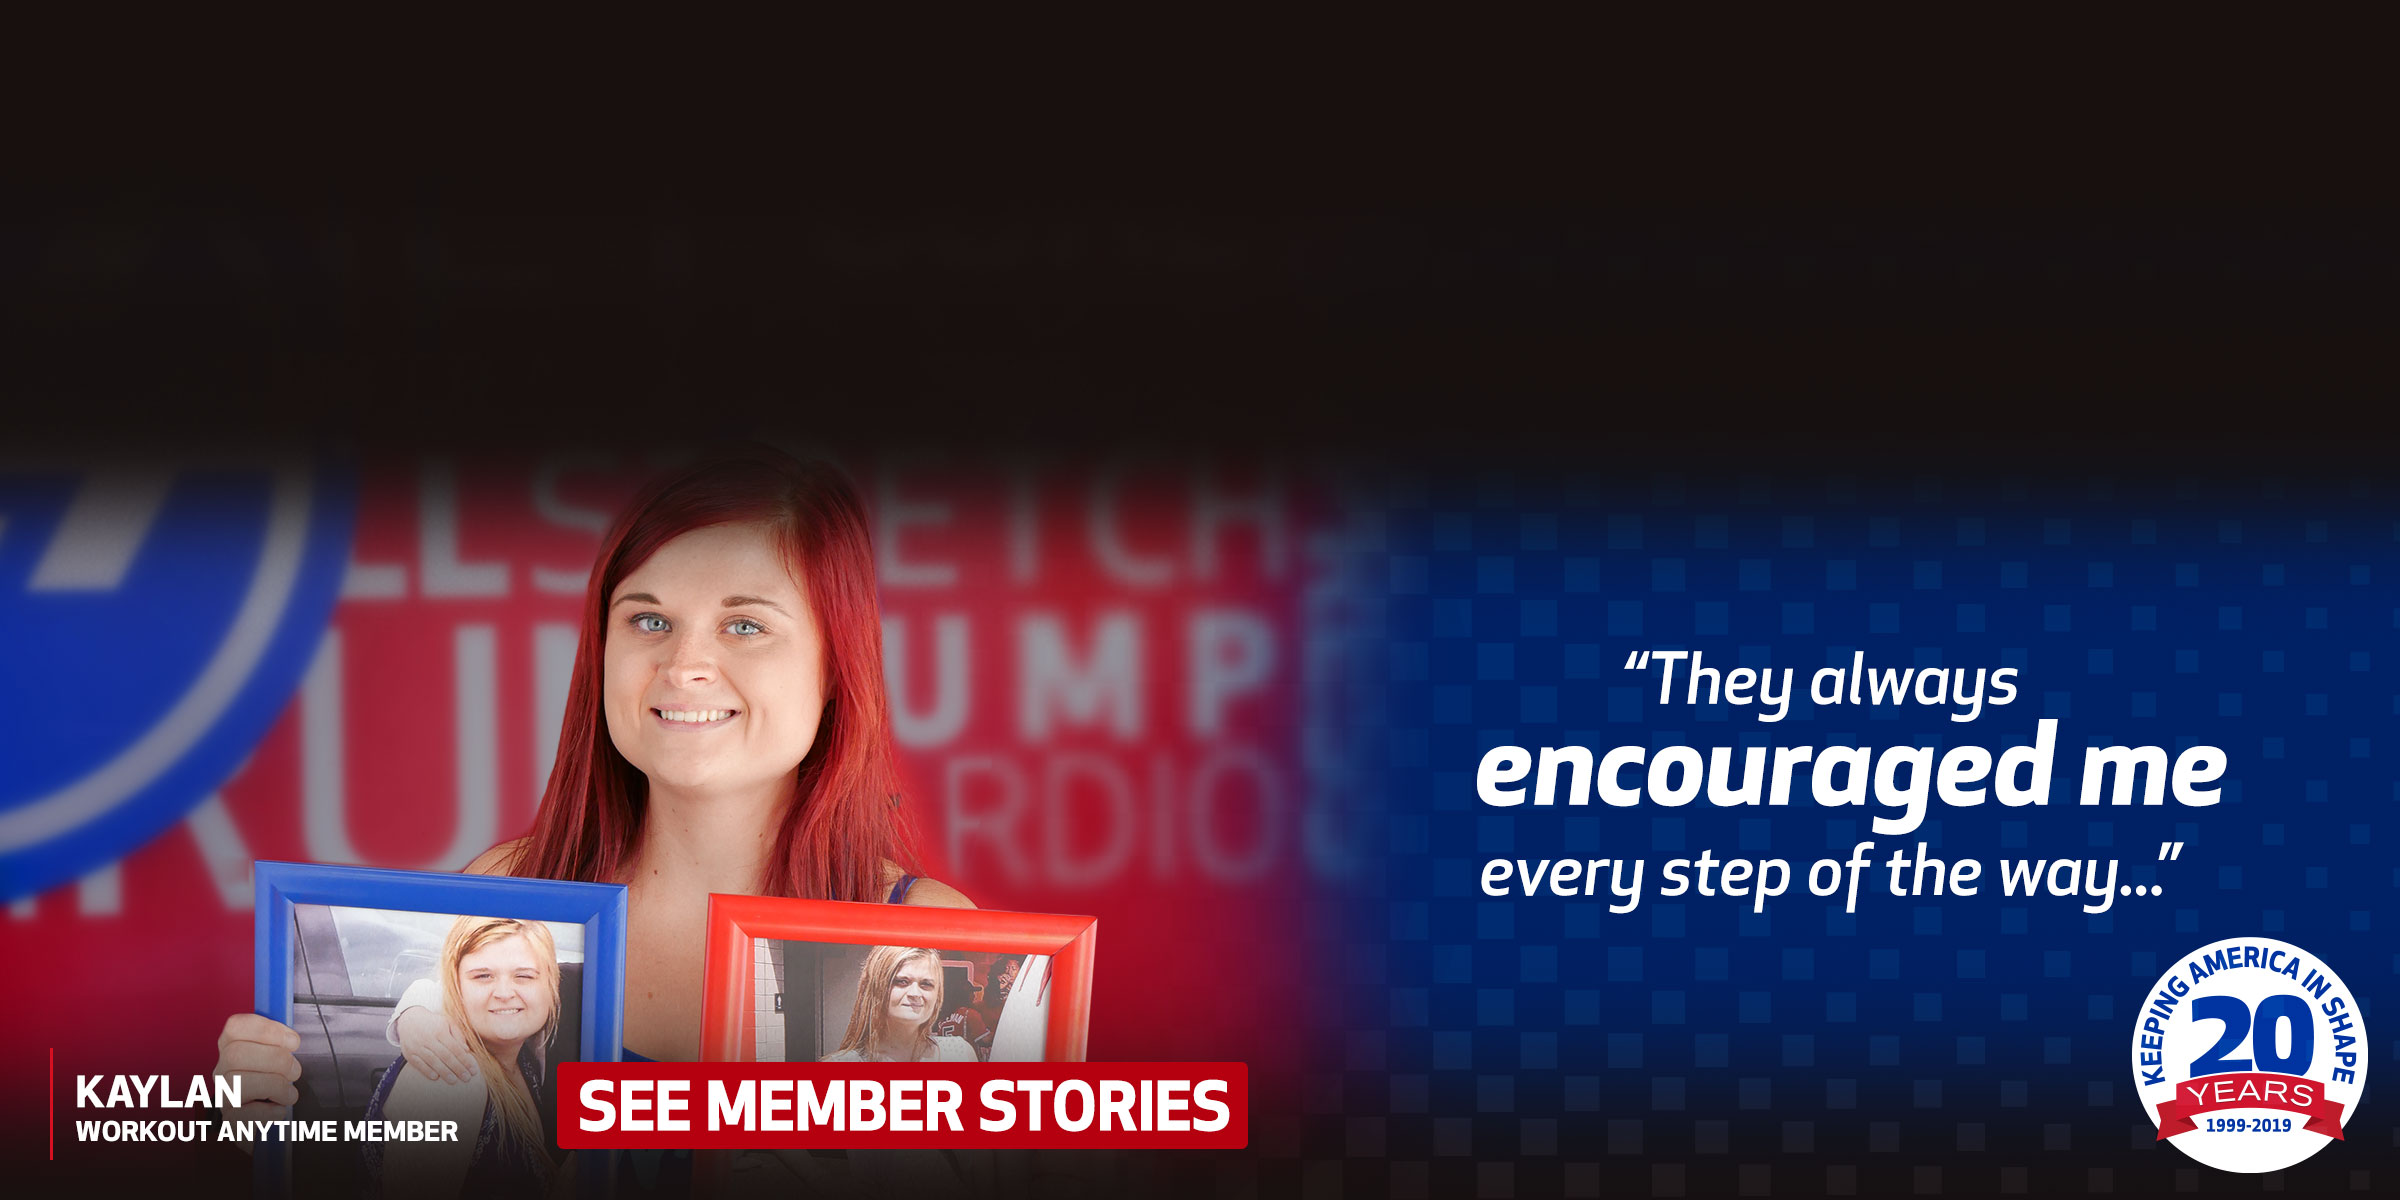 See our Member Stories